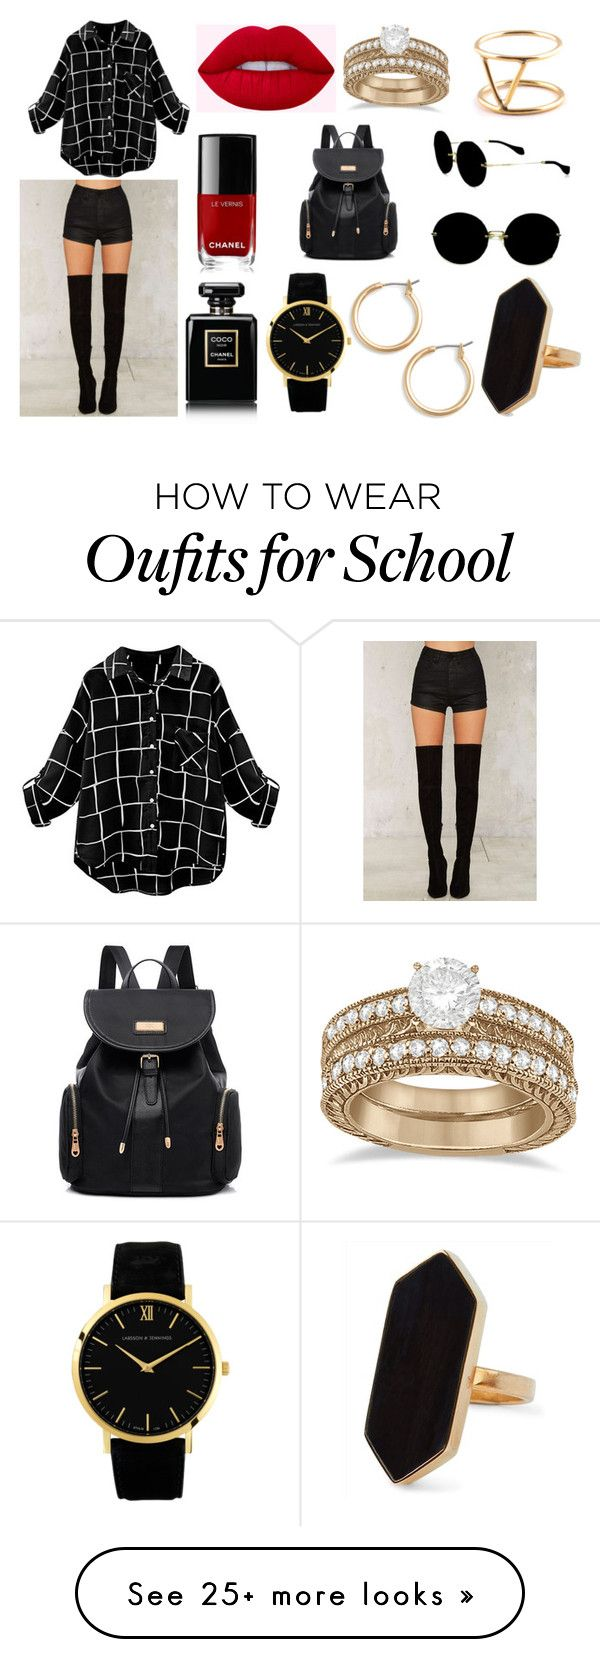 """""""Sin título #1877"""" by sweetblack-21 on Polyvore featuring OneTeaspoon, Chanel, Nordstrom, Jaeger, Miu Miu, Allurez and SOKO"""